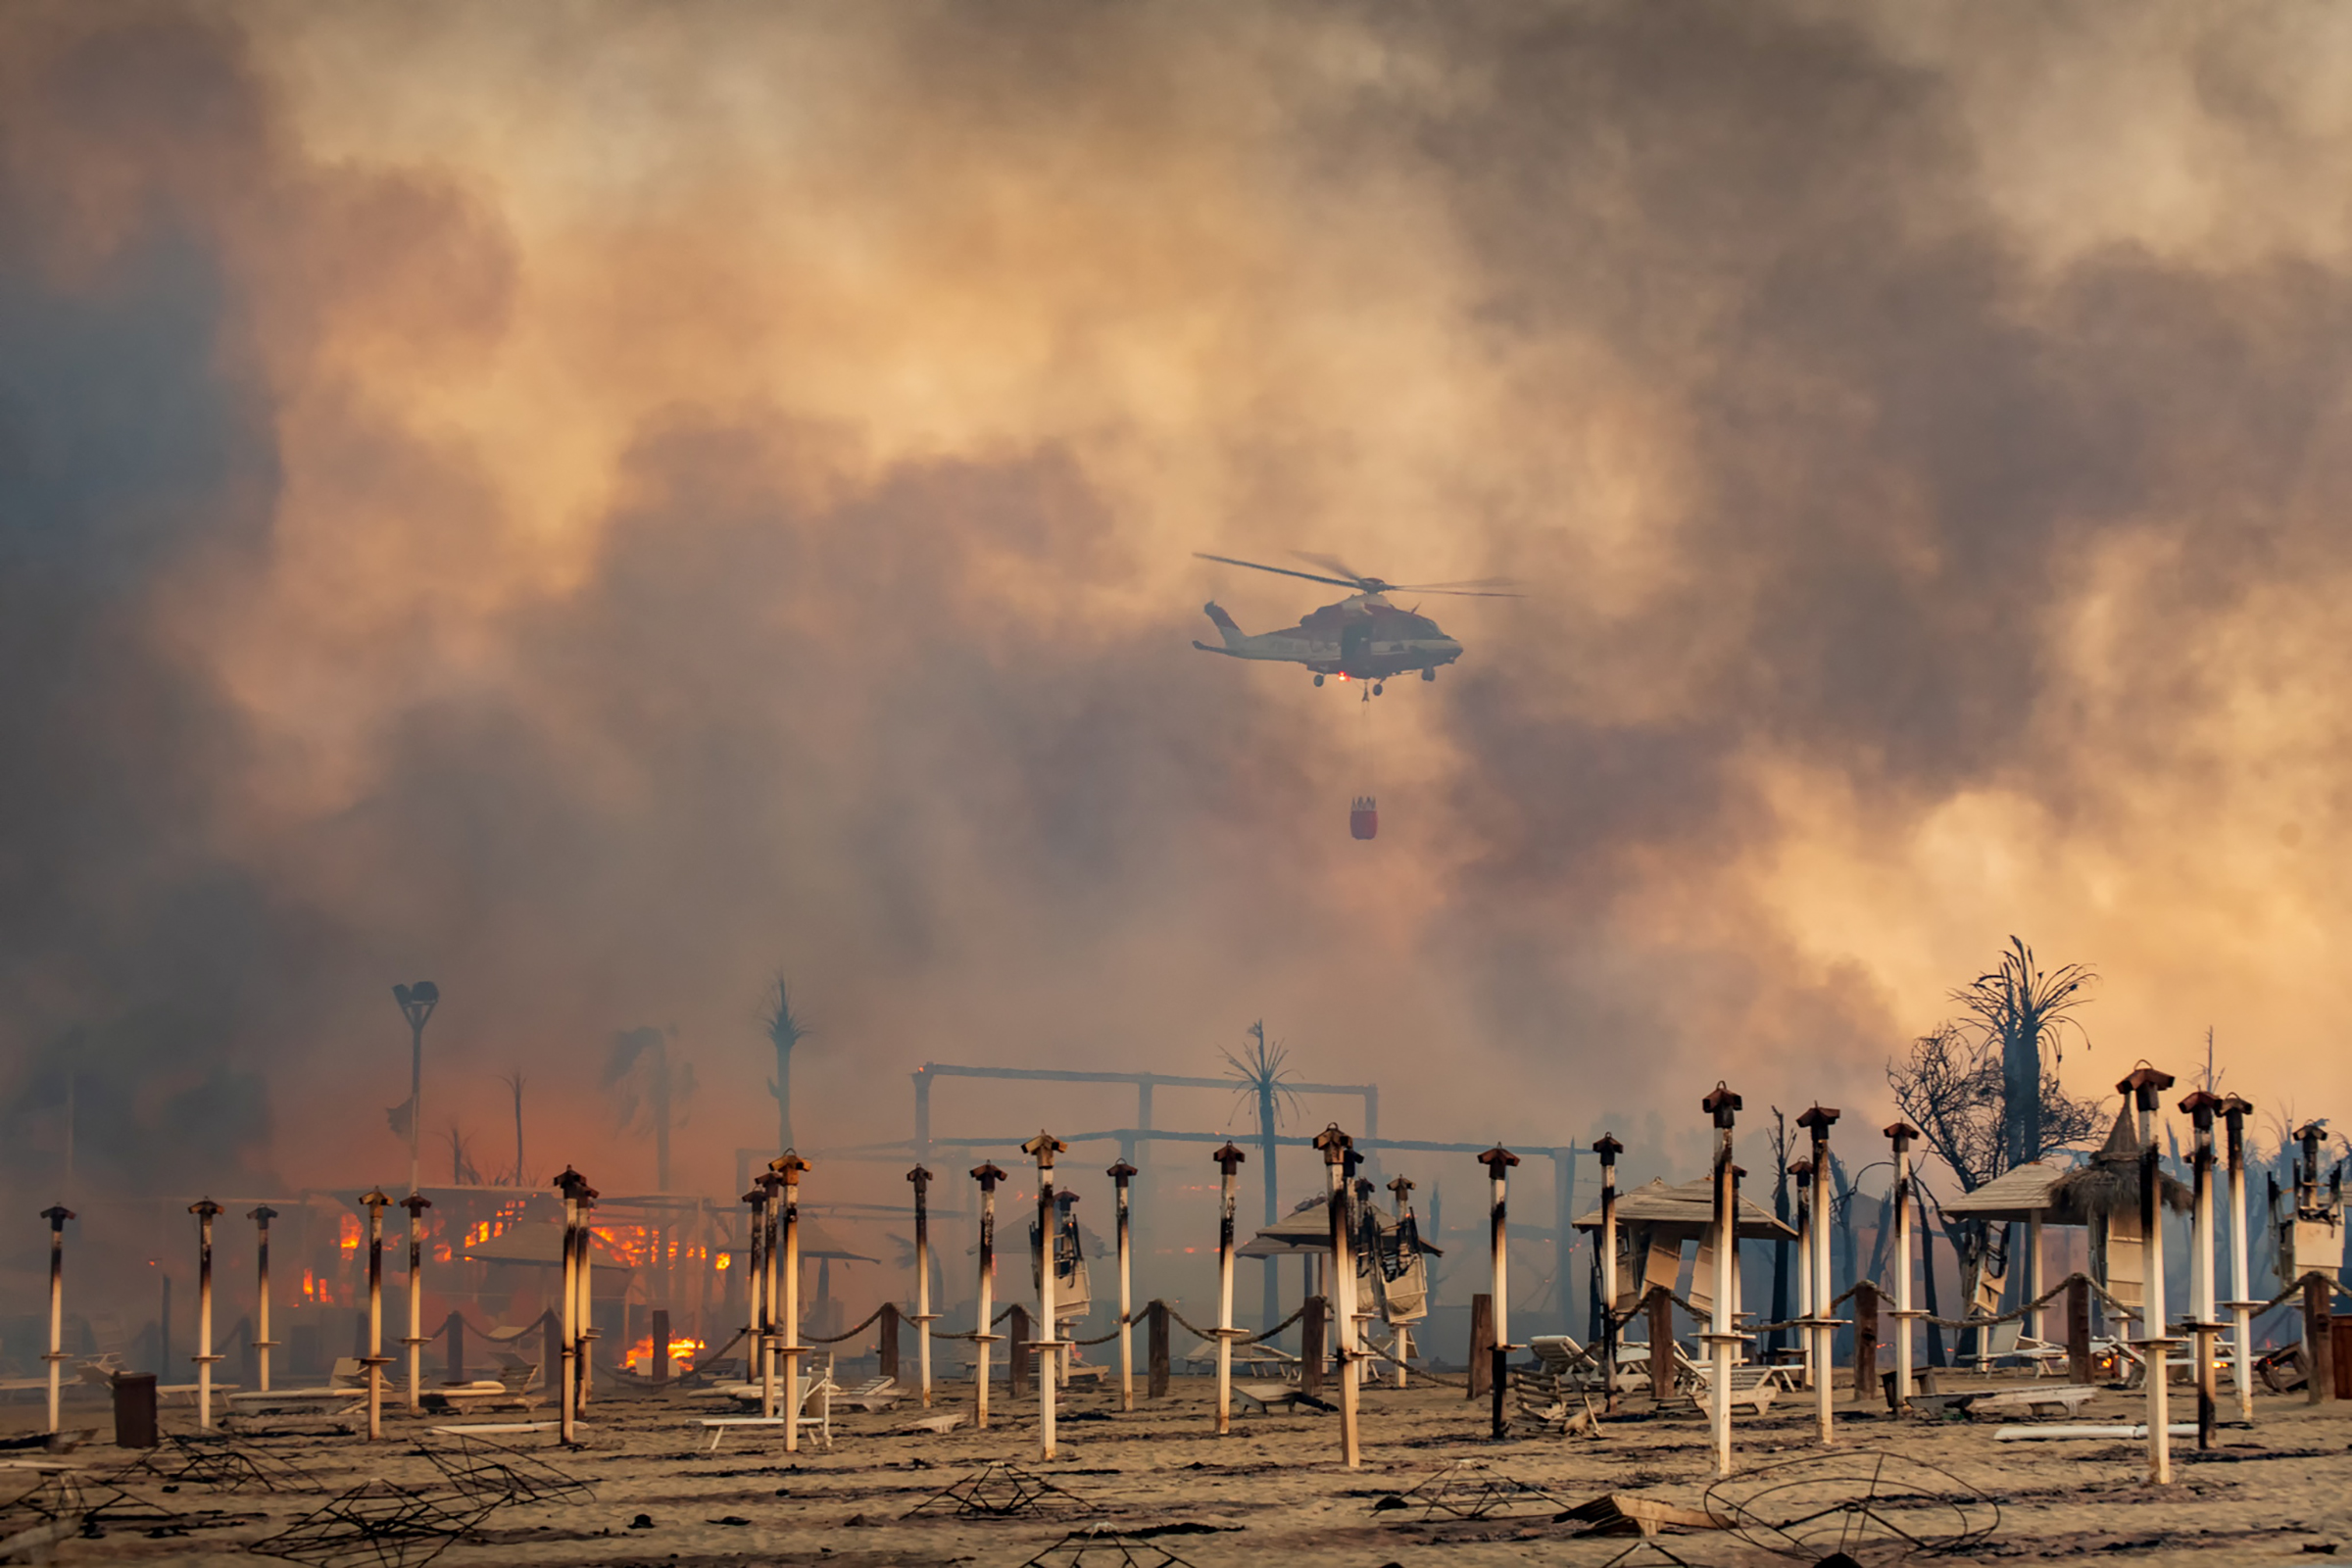 A helicopter flies above a fire at Le Capannine beach in Catania, Sicily, Italy on July 30.